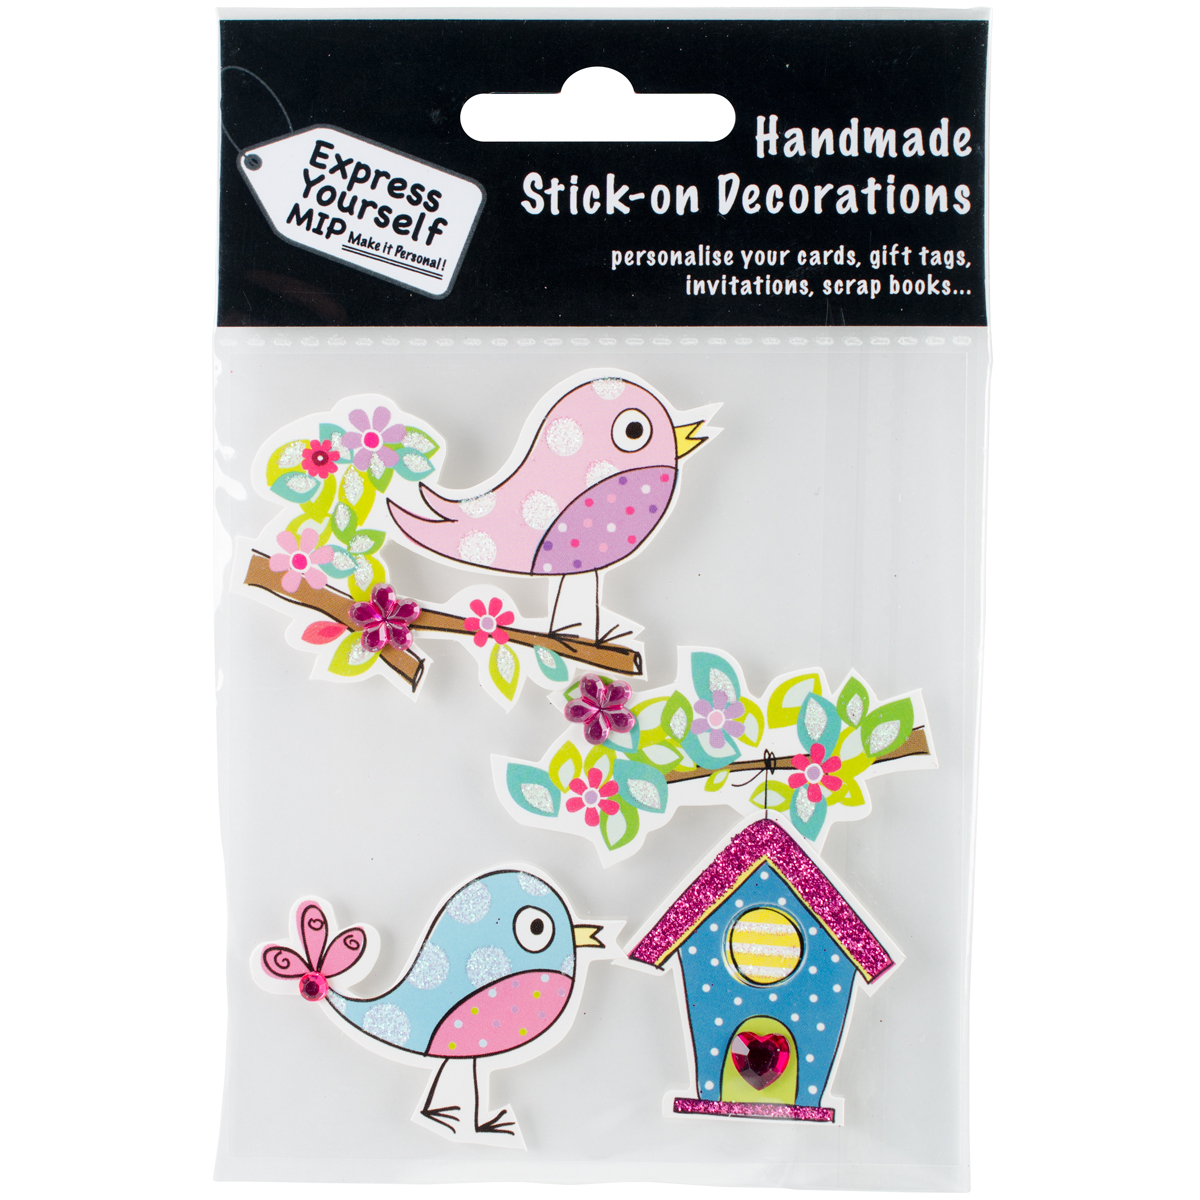 Express Yourself MIP 3D Stickers-Bird & Birdhouse